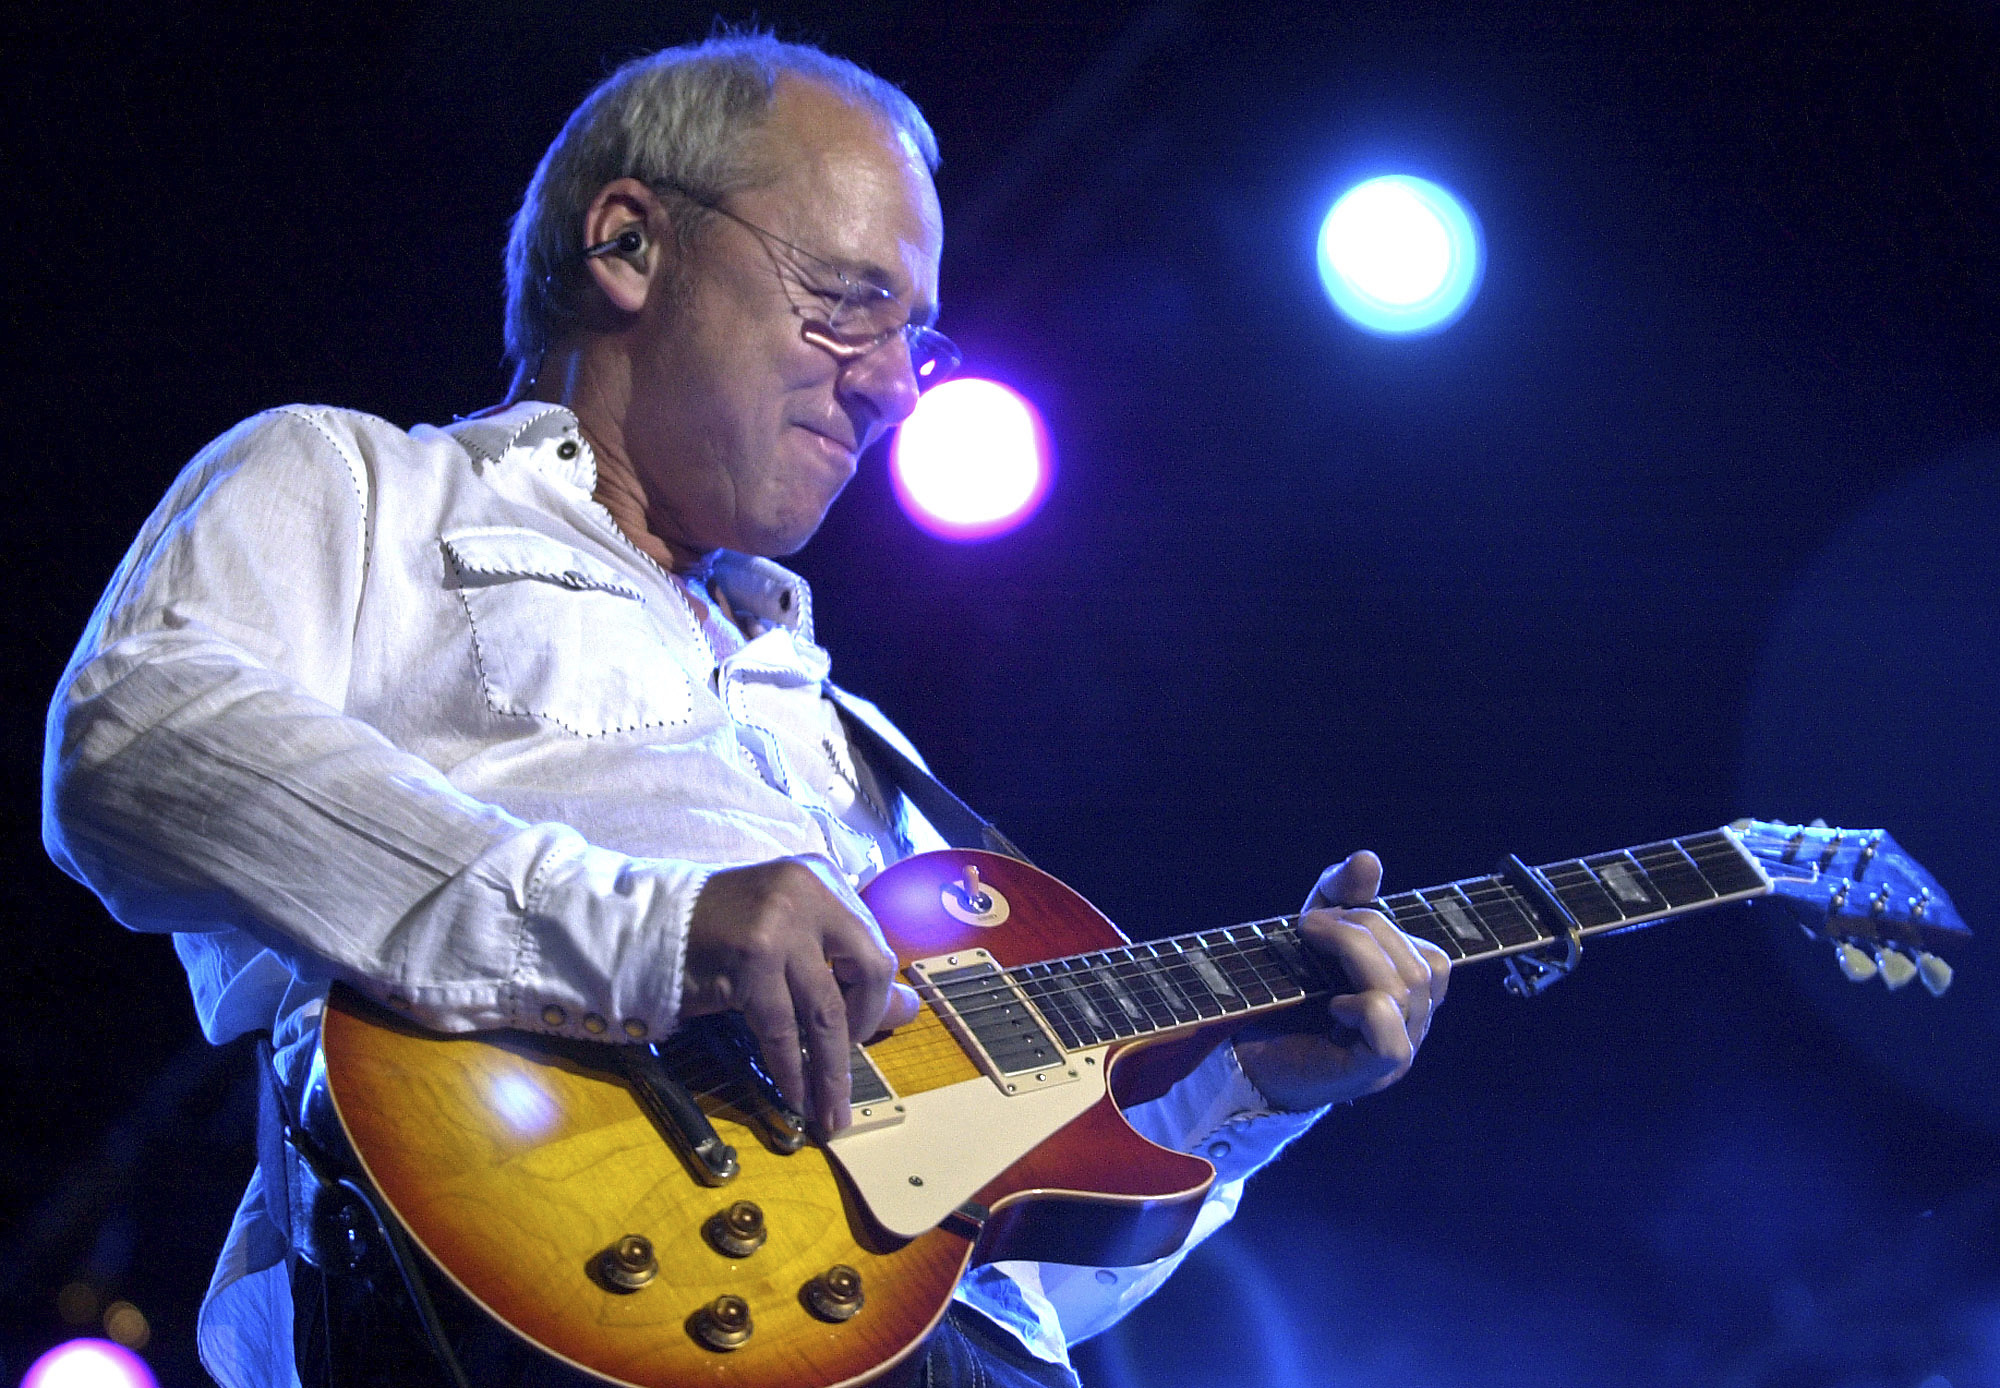 FILE - In this March 5, 2005 file photo, Dire Straits lead guitarist Mark Knopfler performs at a concert in Bombay, India. English rockers Dire Straits will be inducted into the Rock and Roll Hall of Fame on April 14, 2018 in Cleveland, Ohio.  (AP Photo/Aijaz Rahi, File)